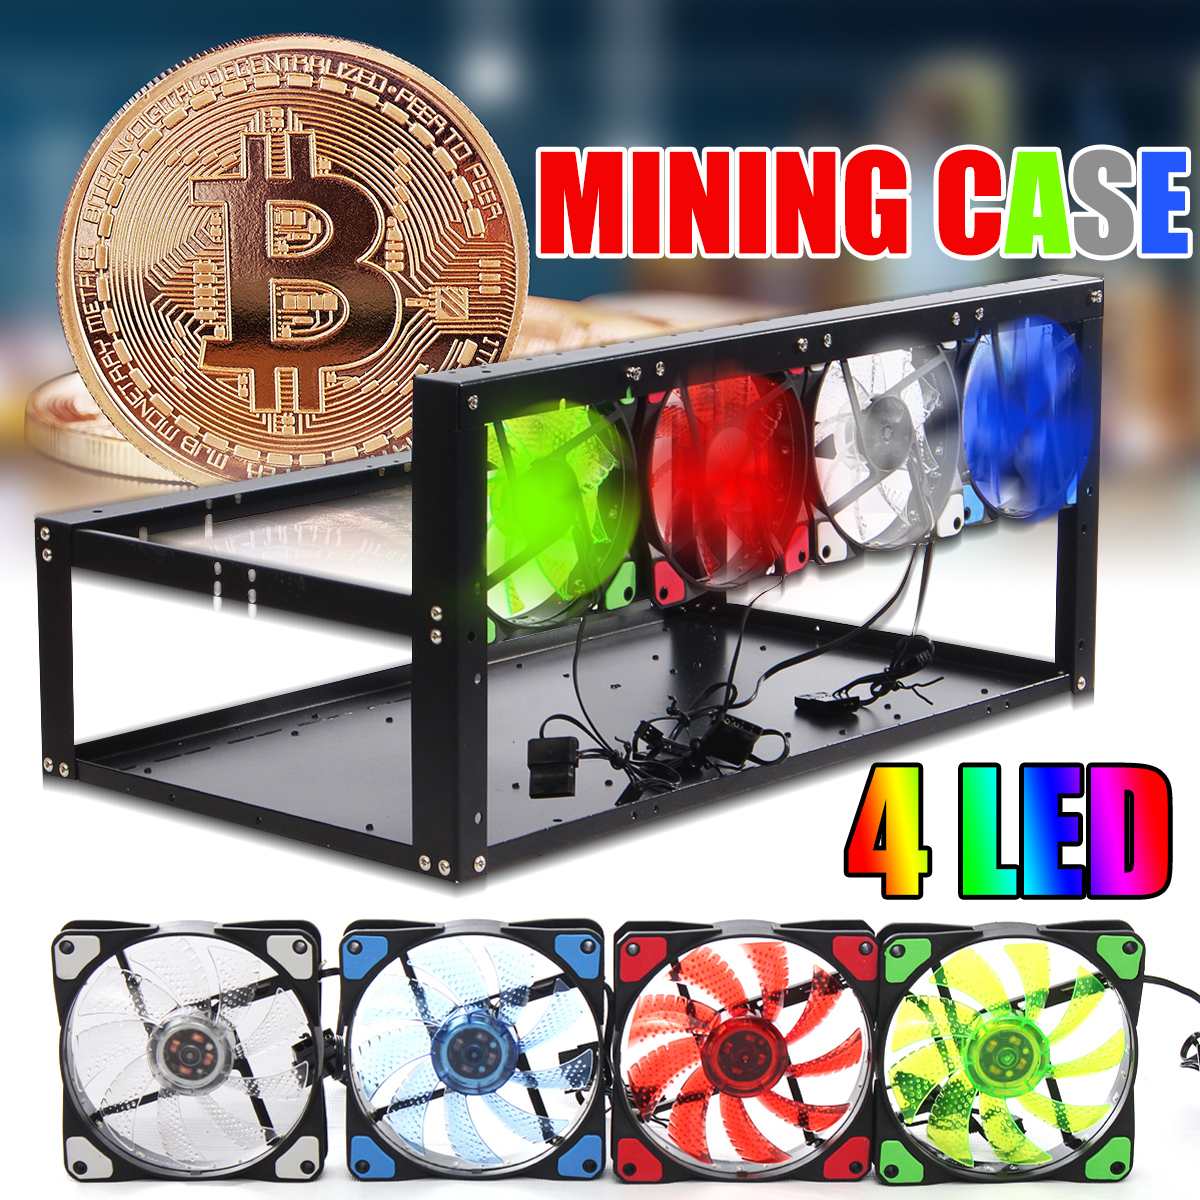 6 GPU 4 Color Fan Steel Coin Open Air Mining Frame Rig Case For BTC ETH Ethereum